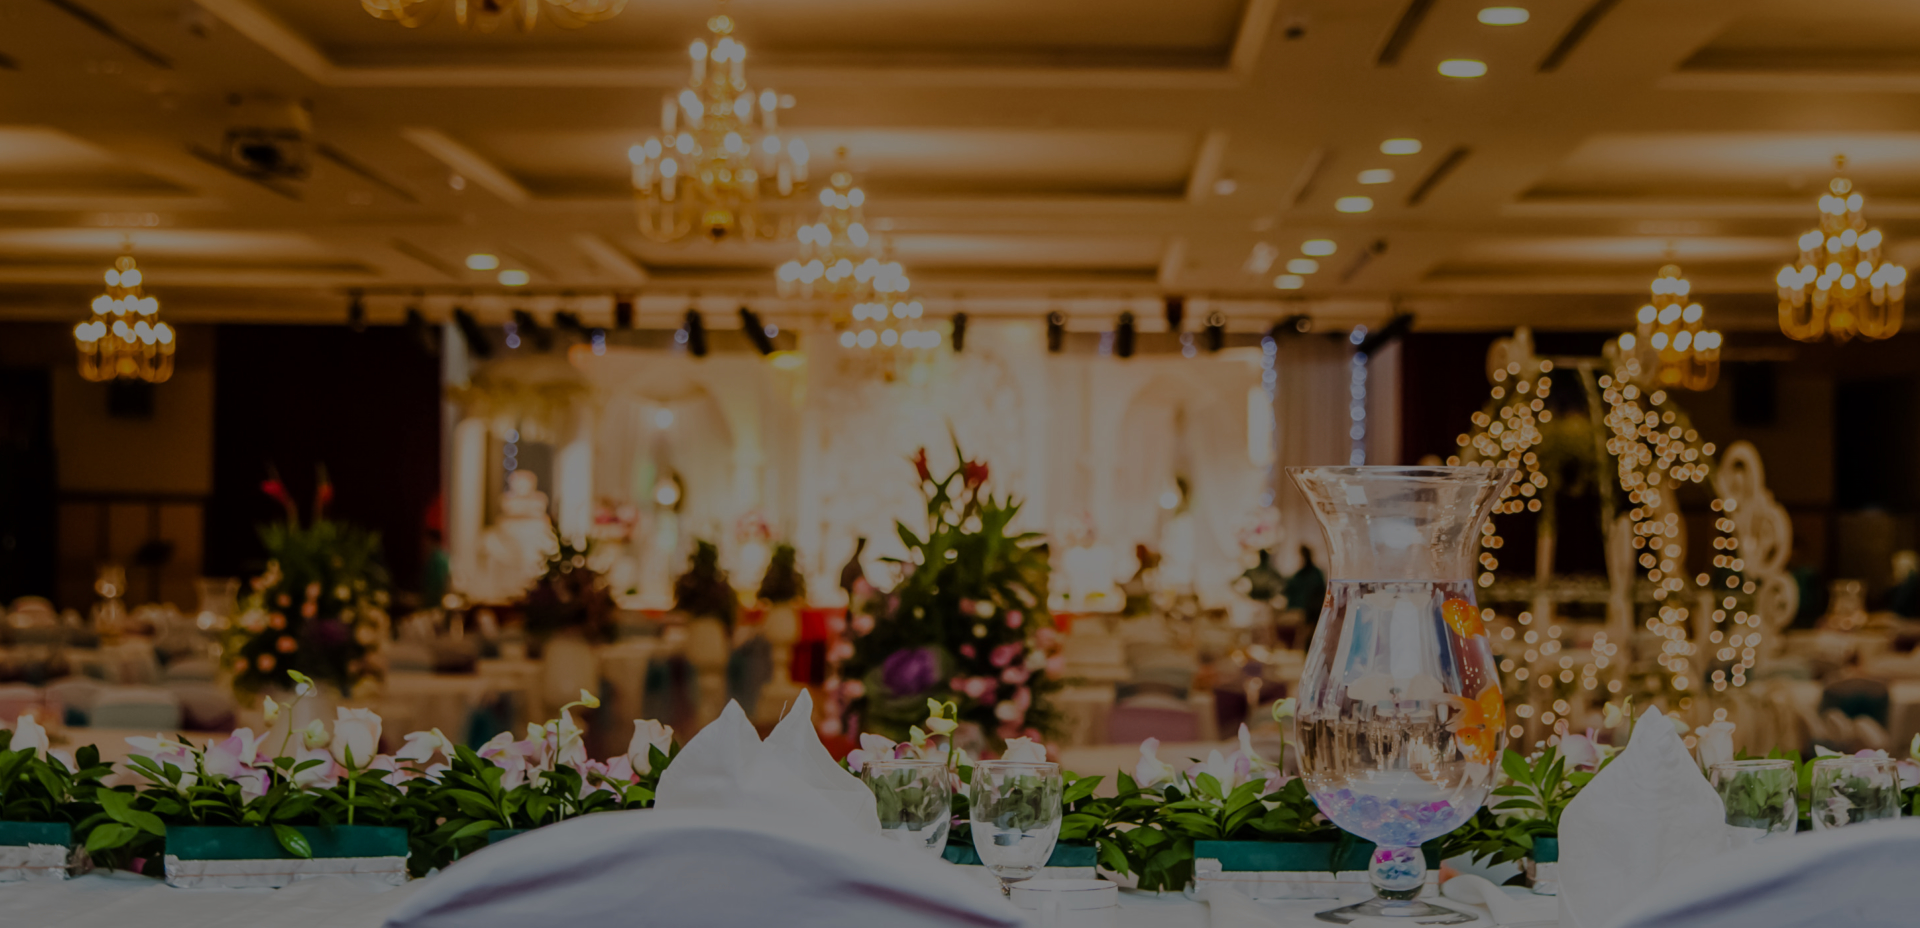 Event reception with luxurious theme